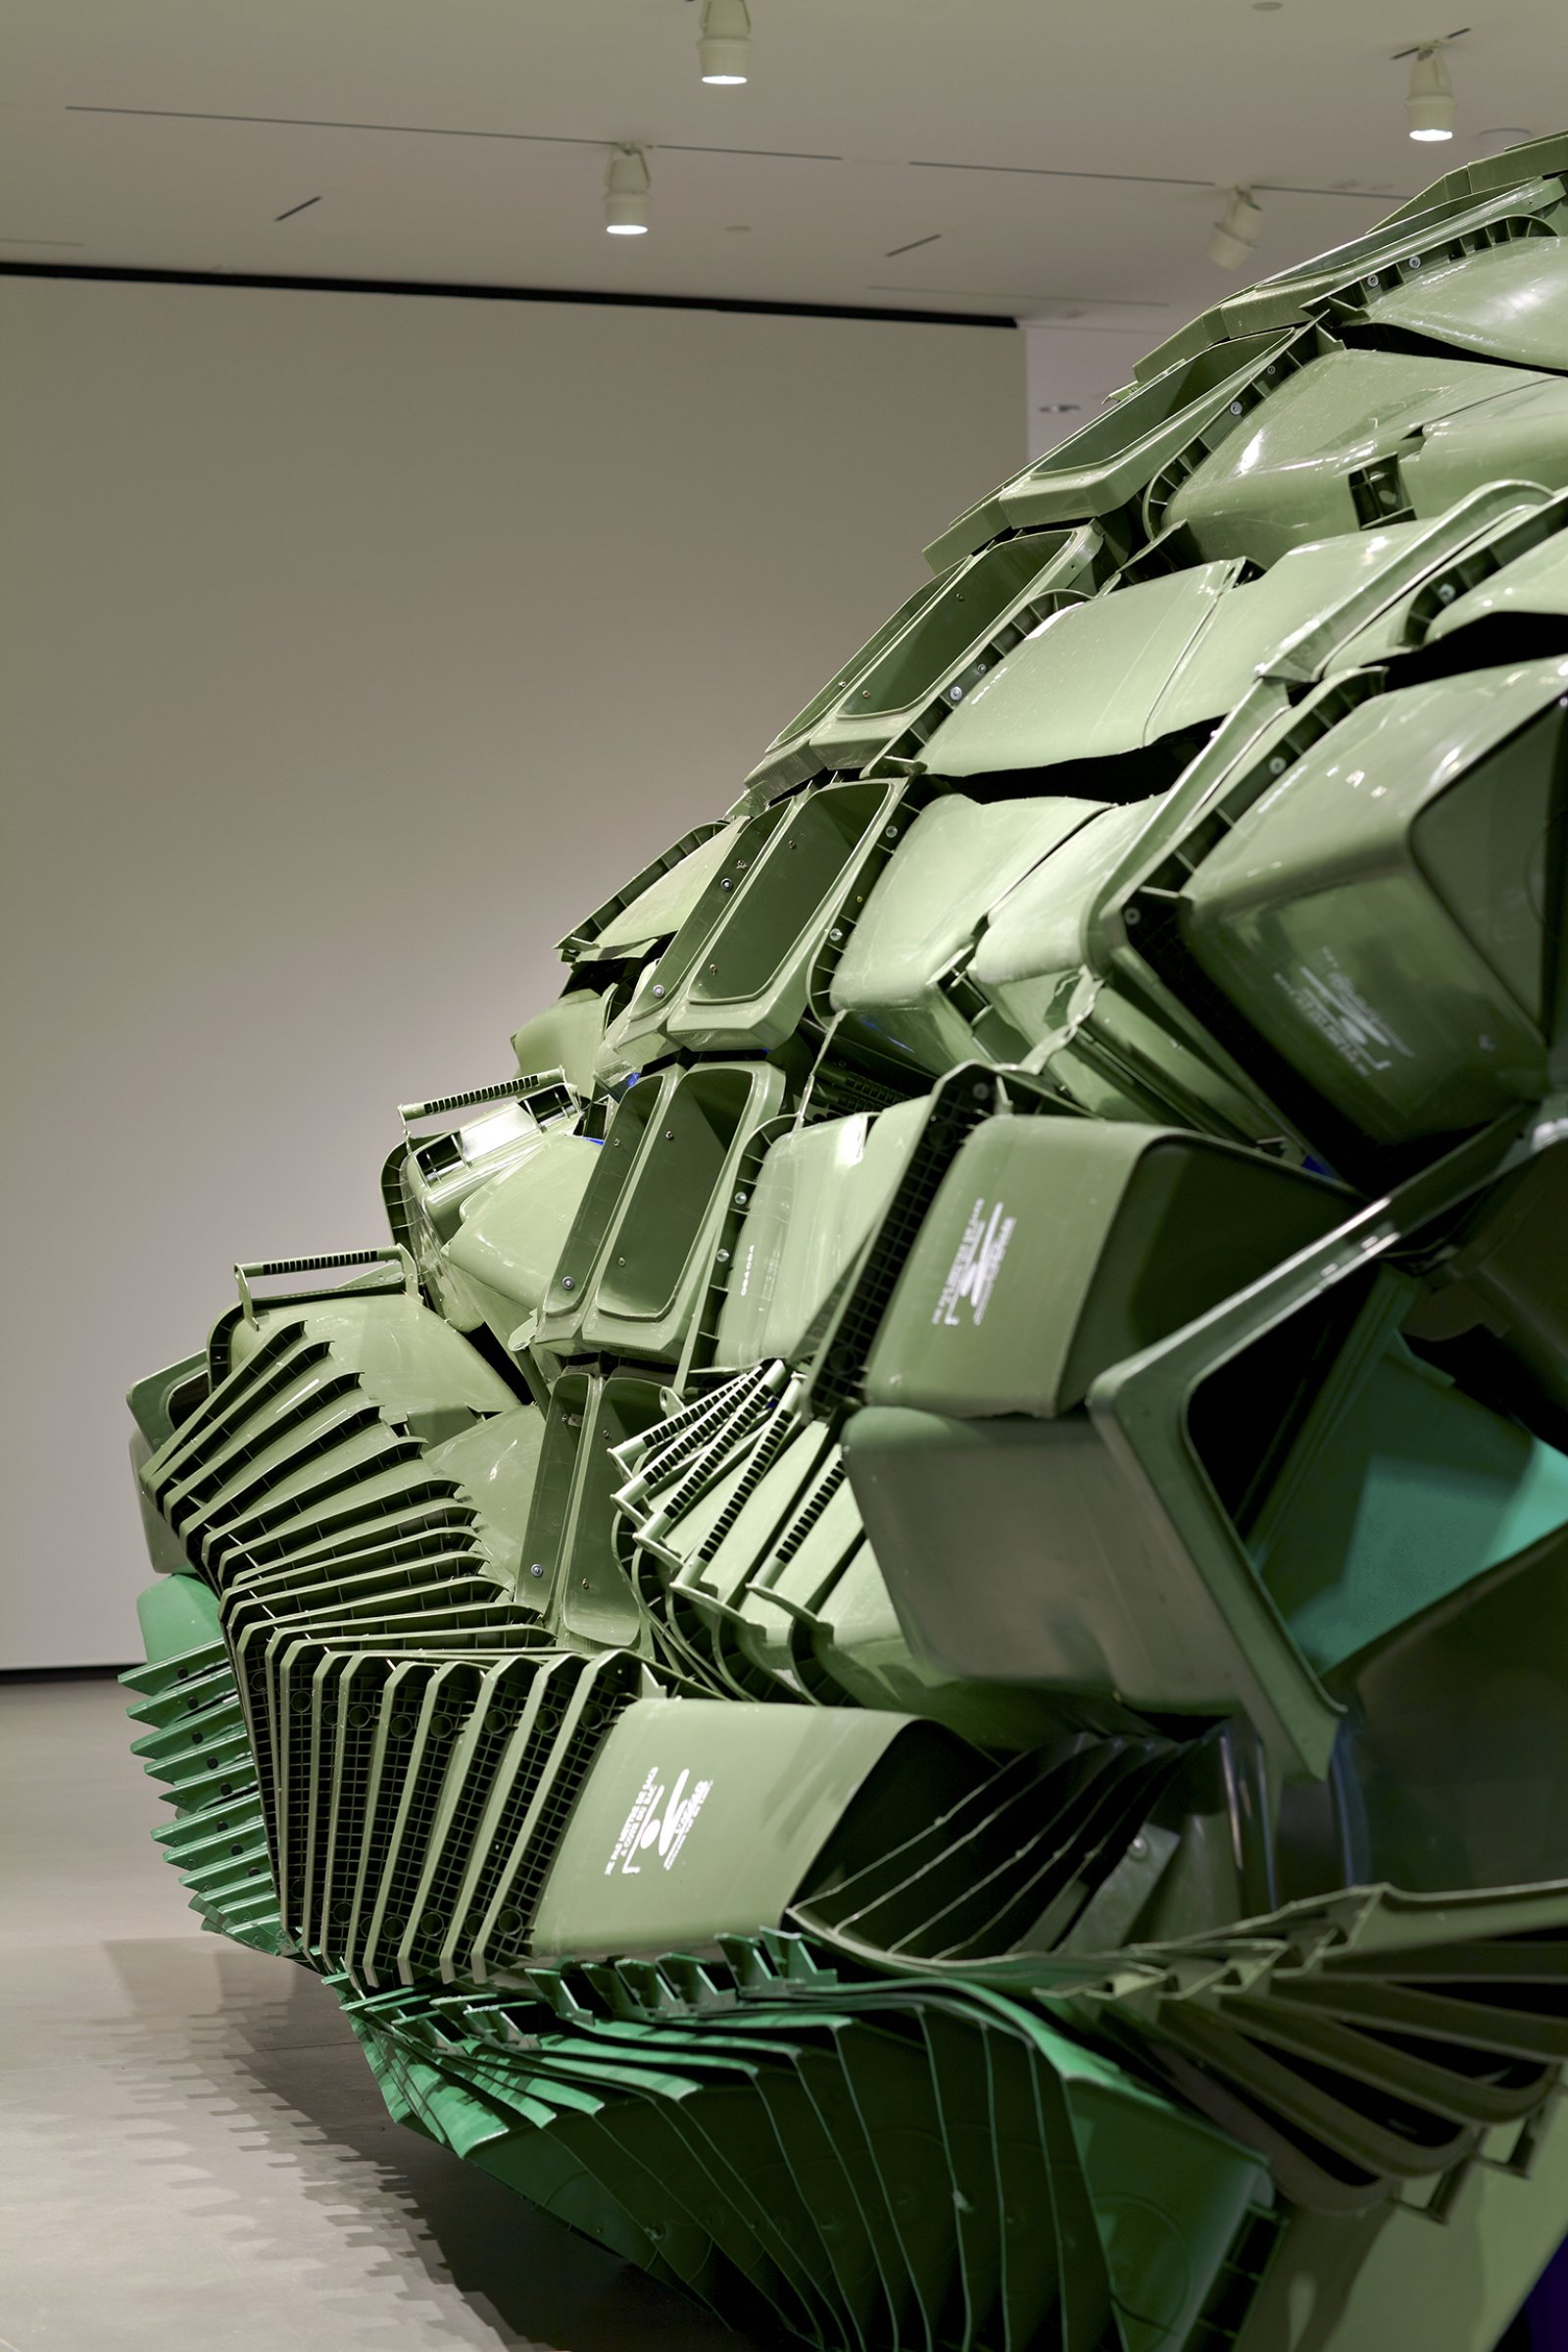 Brian Jungen,Carapace(detail), 2009–2011, plastic recycling containers, 144 x 264 x 252 in. (370 x 670 x 640 cm)